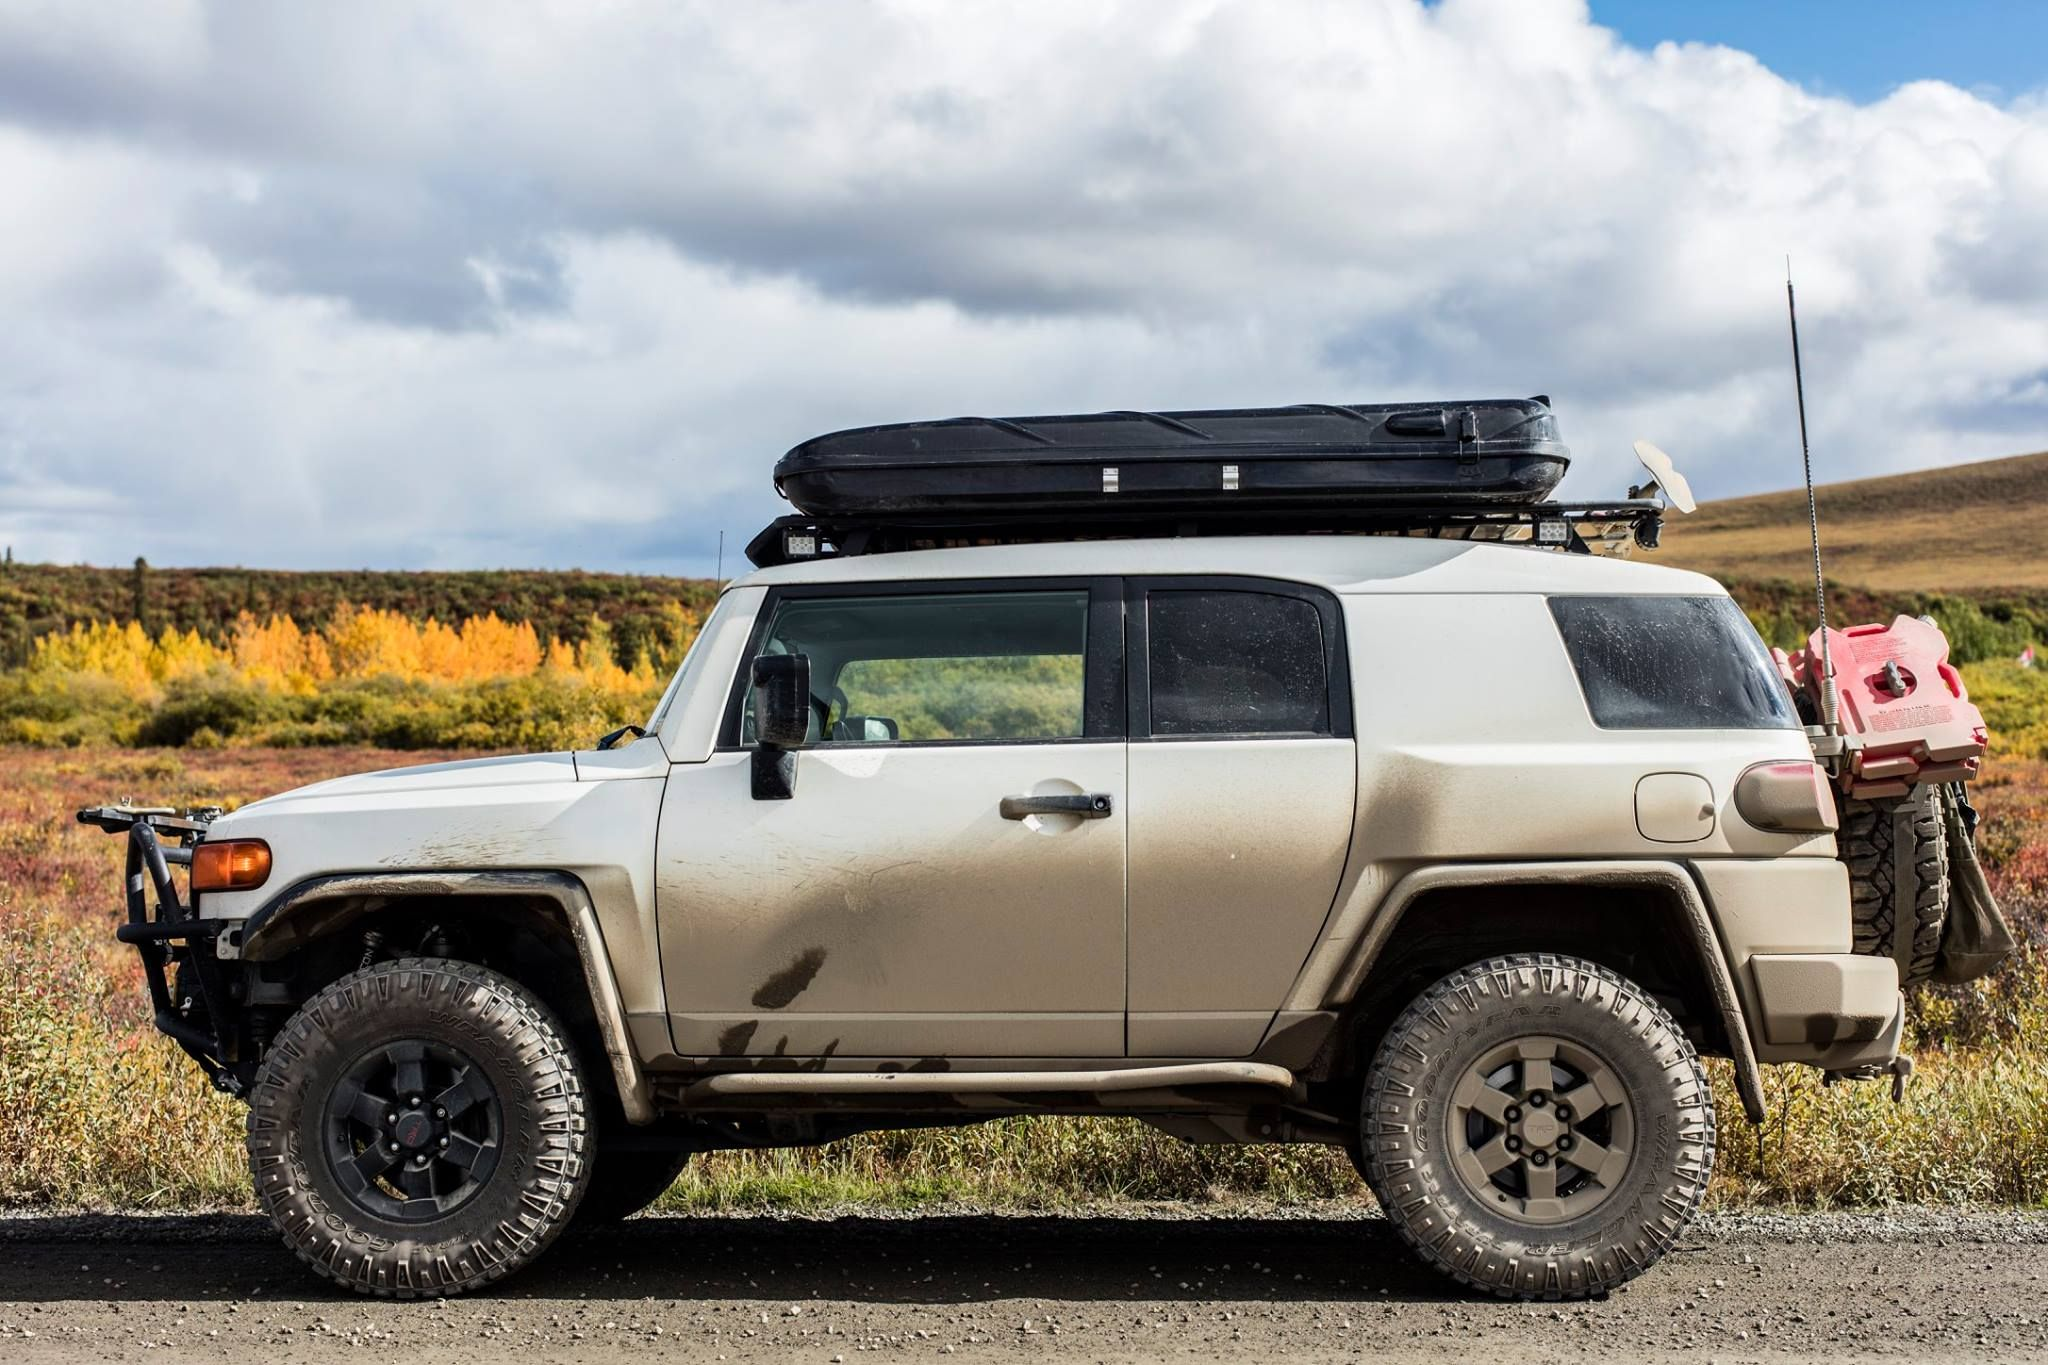 FJ cruiser setup - james baroud & FJ cruiser setup - james baroud | Rooftop Tent/Living Combo ...